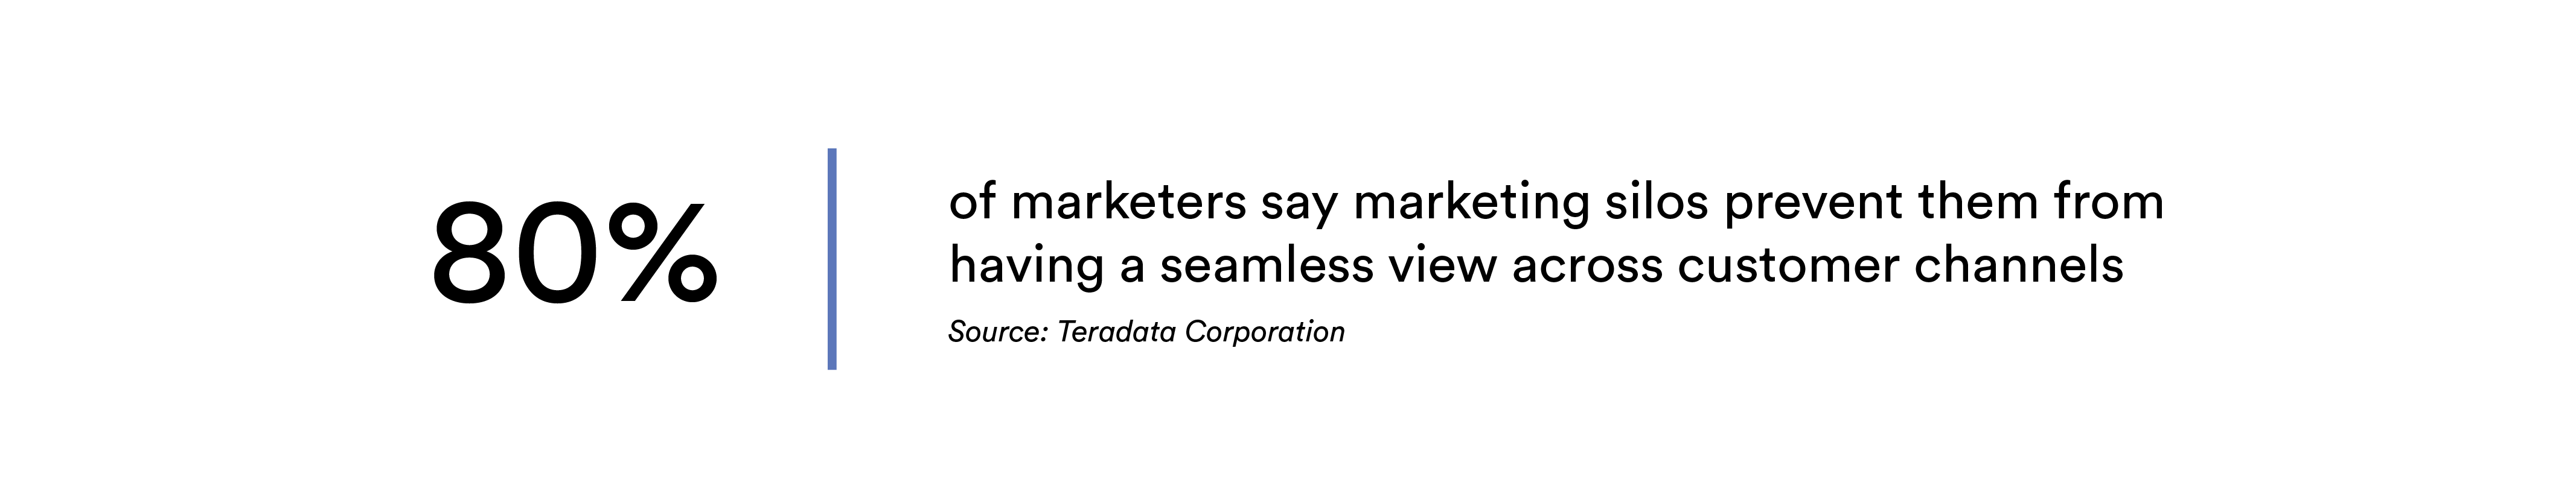 Text reads: 80% of marketers say marketing silos prevent them from having a seamless view across customer channels.